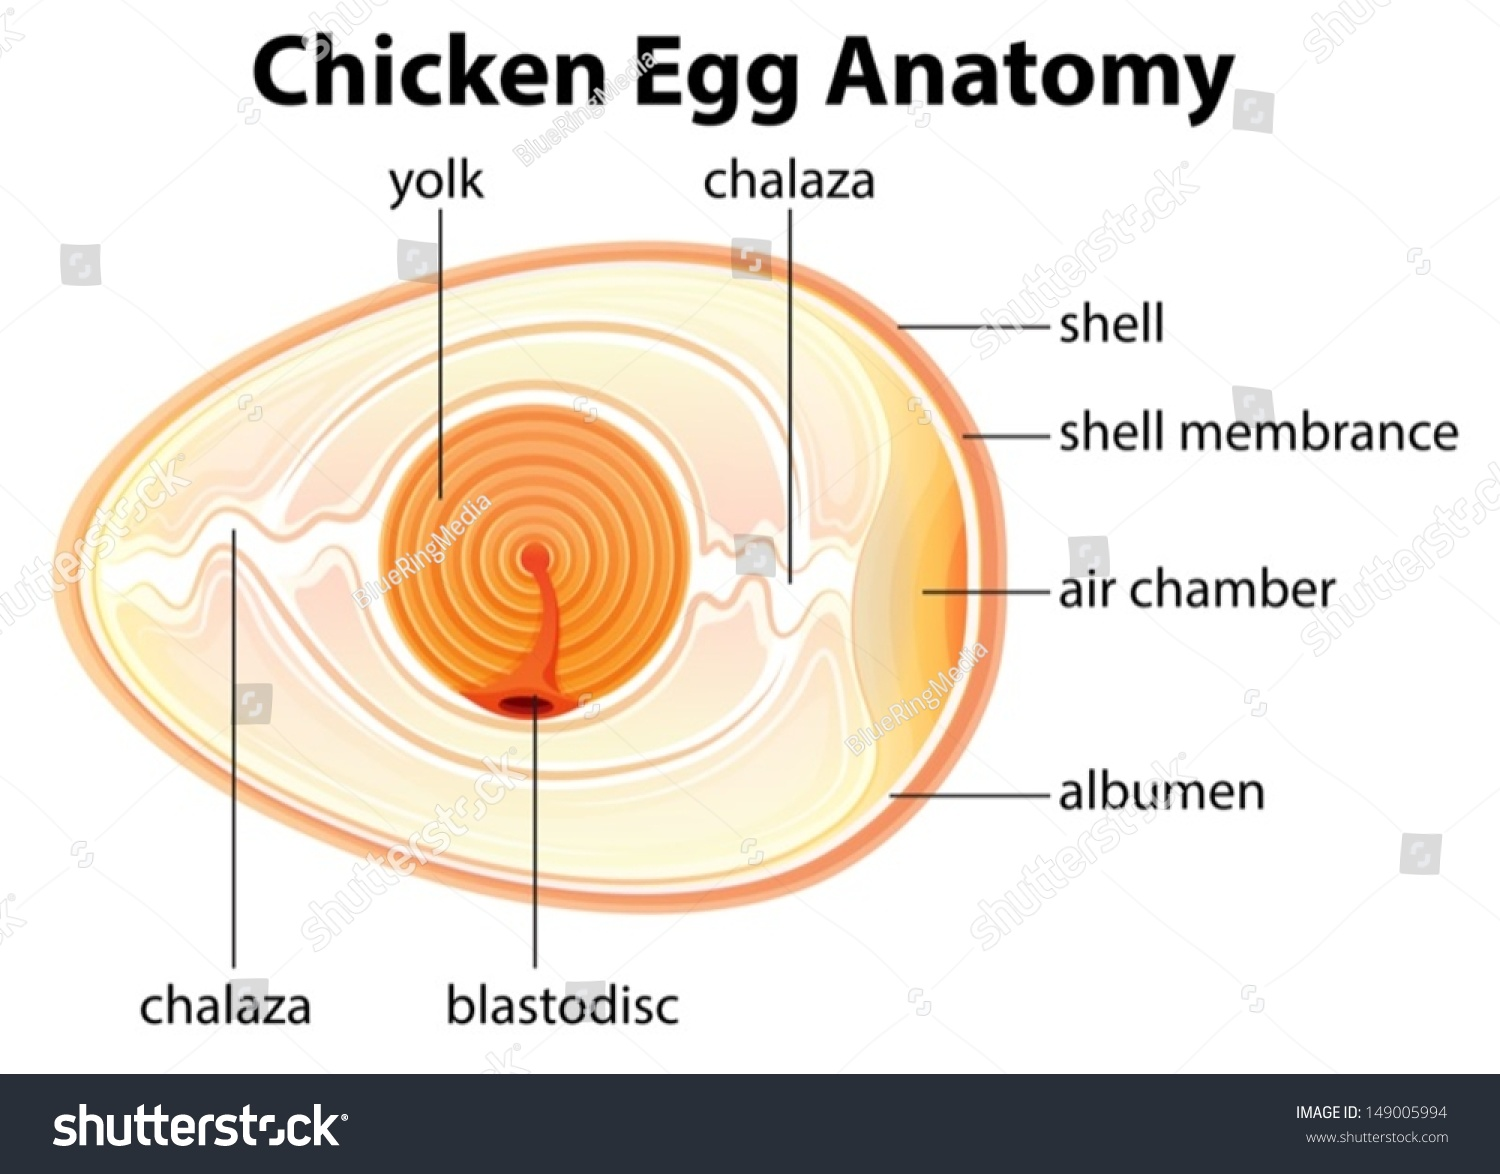 Illustration Showing Chicken Egg Anatomy Stock Vector 149005994 ...